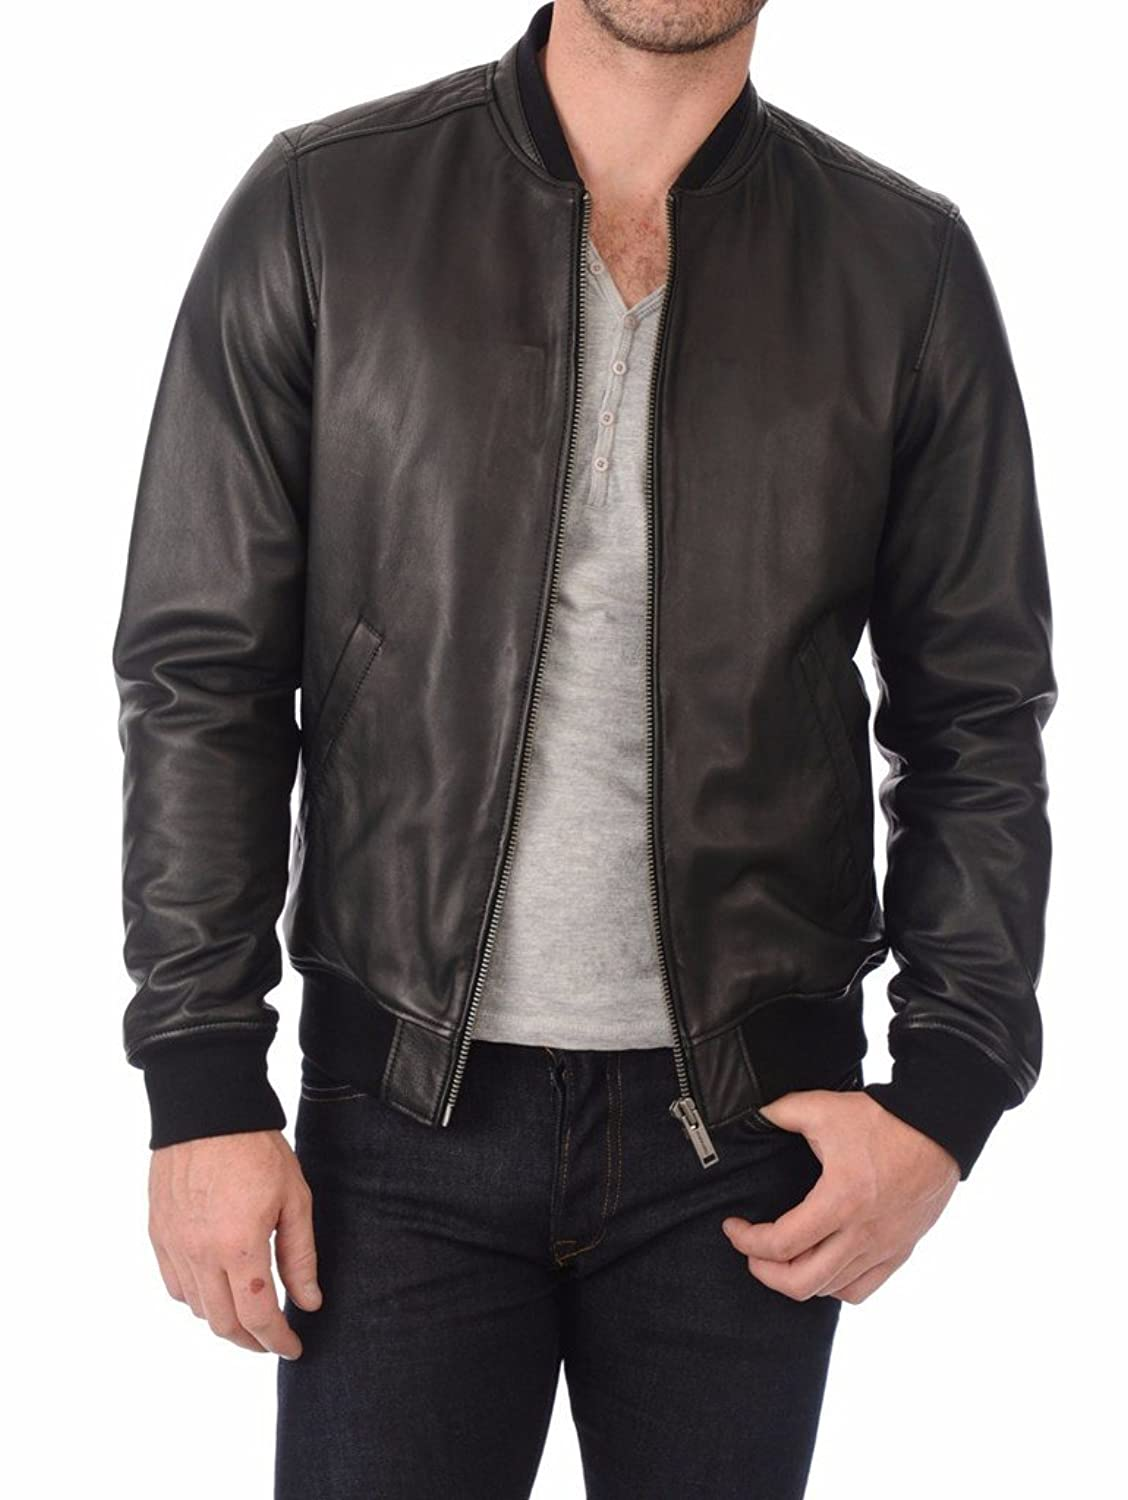 Leather Planet Men's Lambskin Leather Bomber Biker Jacket at ...